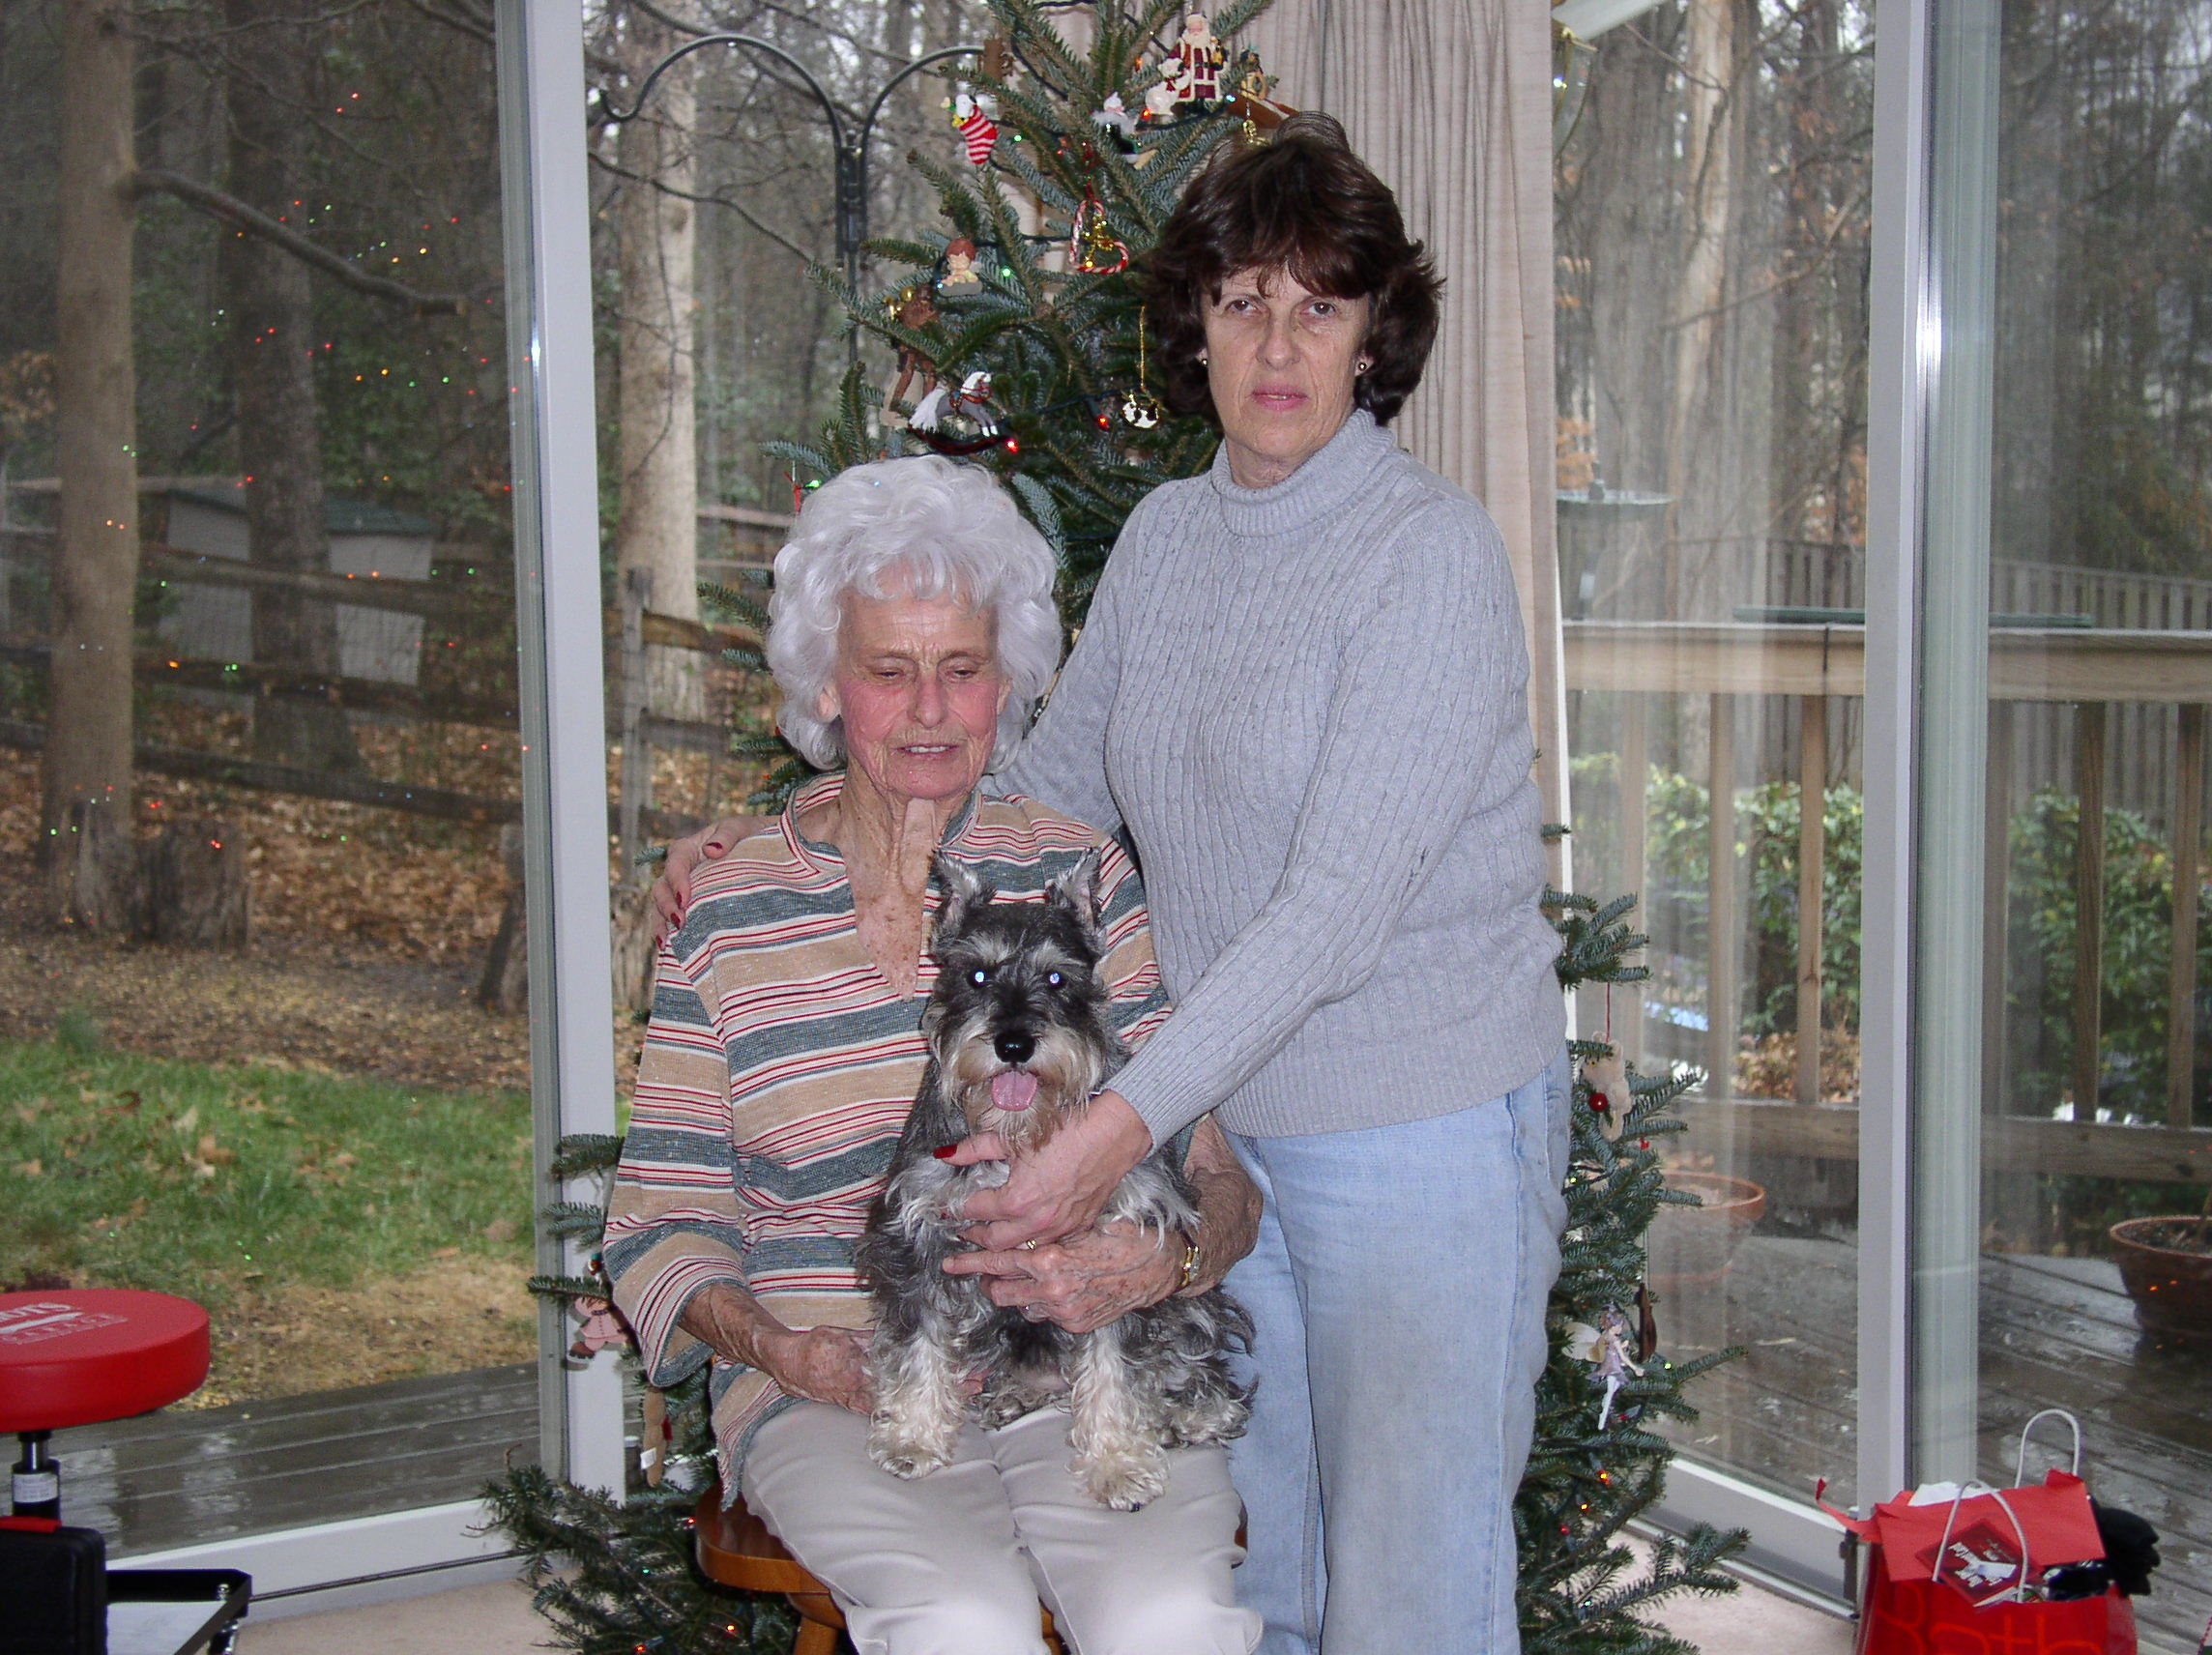 The picture is of Kathy with her 94 year old mother who she cared for until she passed away last year. Kathy was a caring daughter, fantastic mother, wife (of 38 years) and best friend for 43 years. She loved her animals.